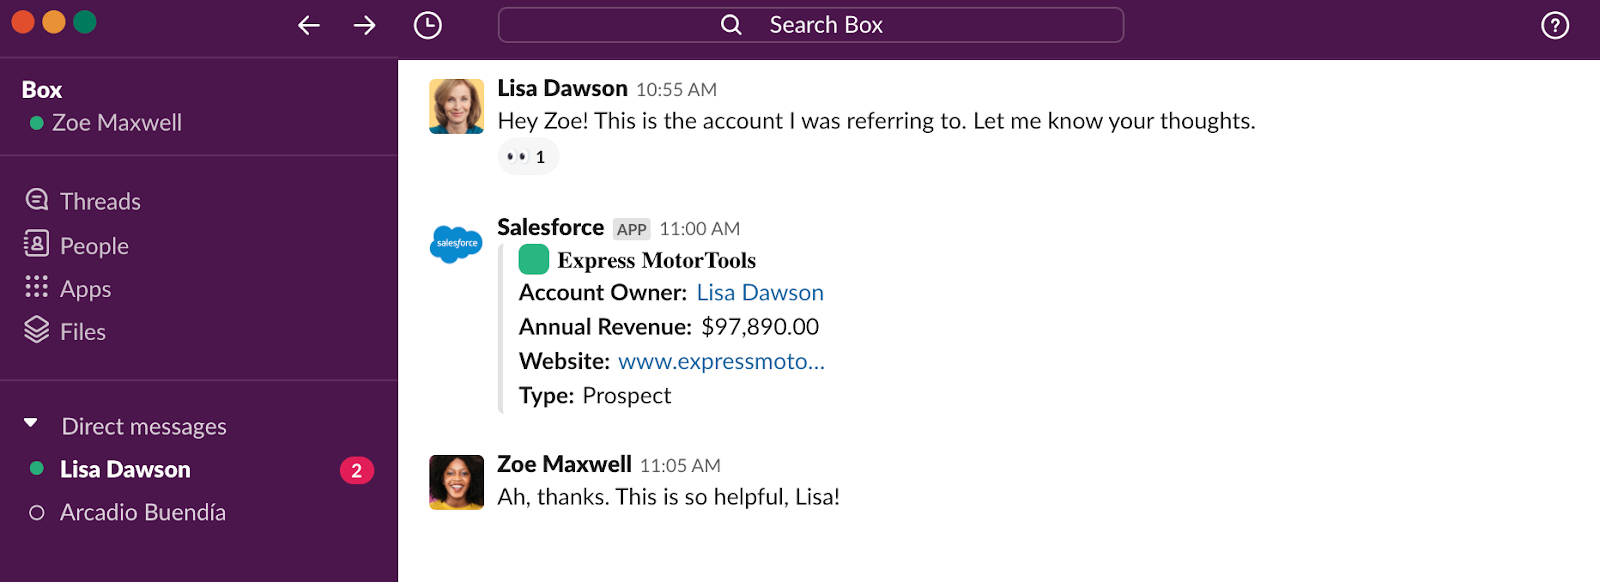 Box sales team using Salesforce integration in Slack